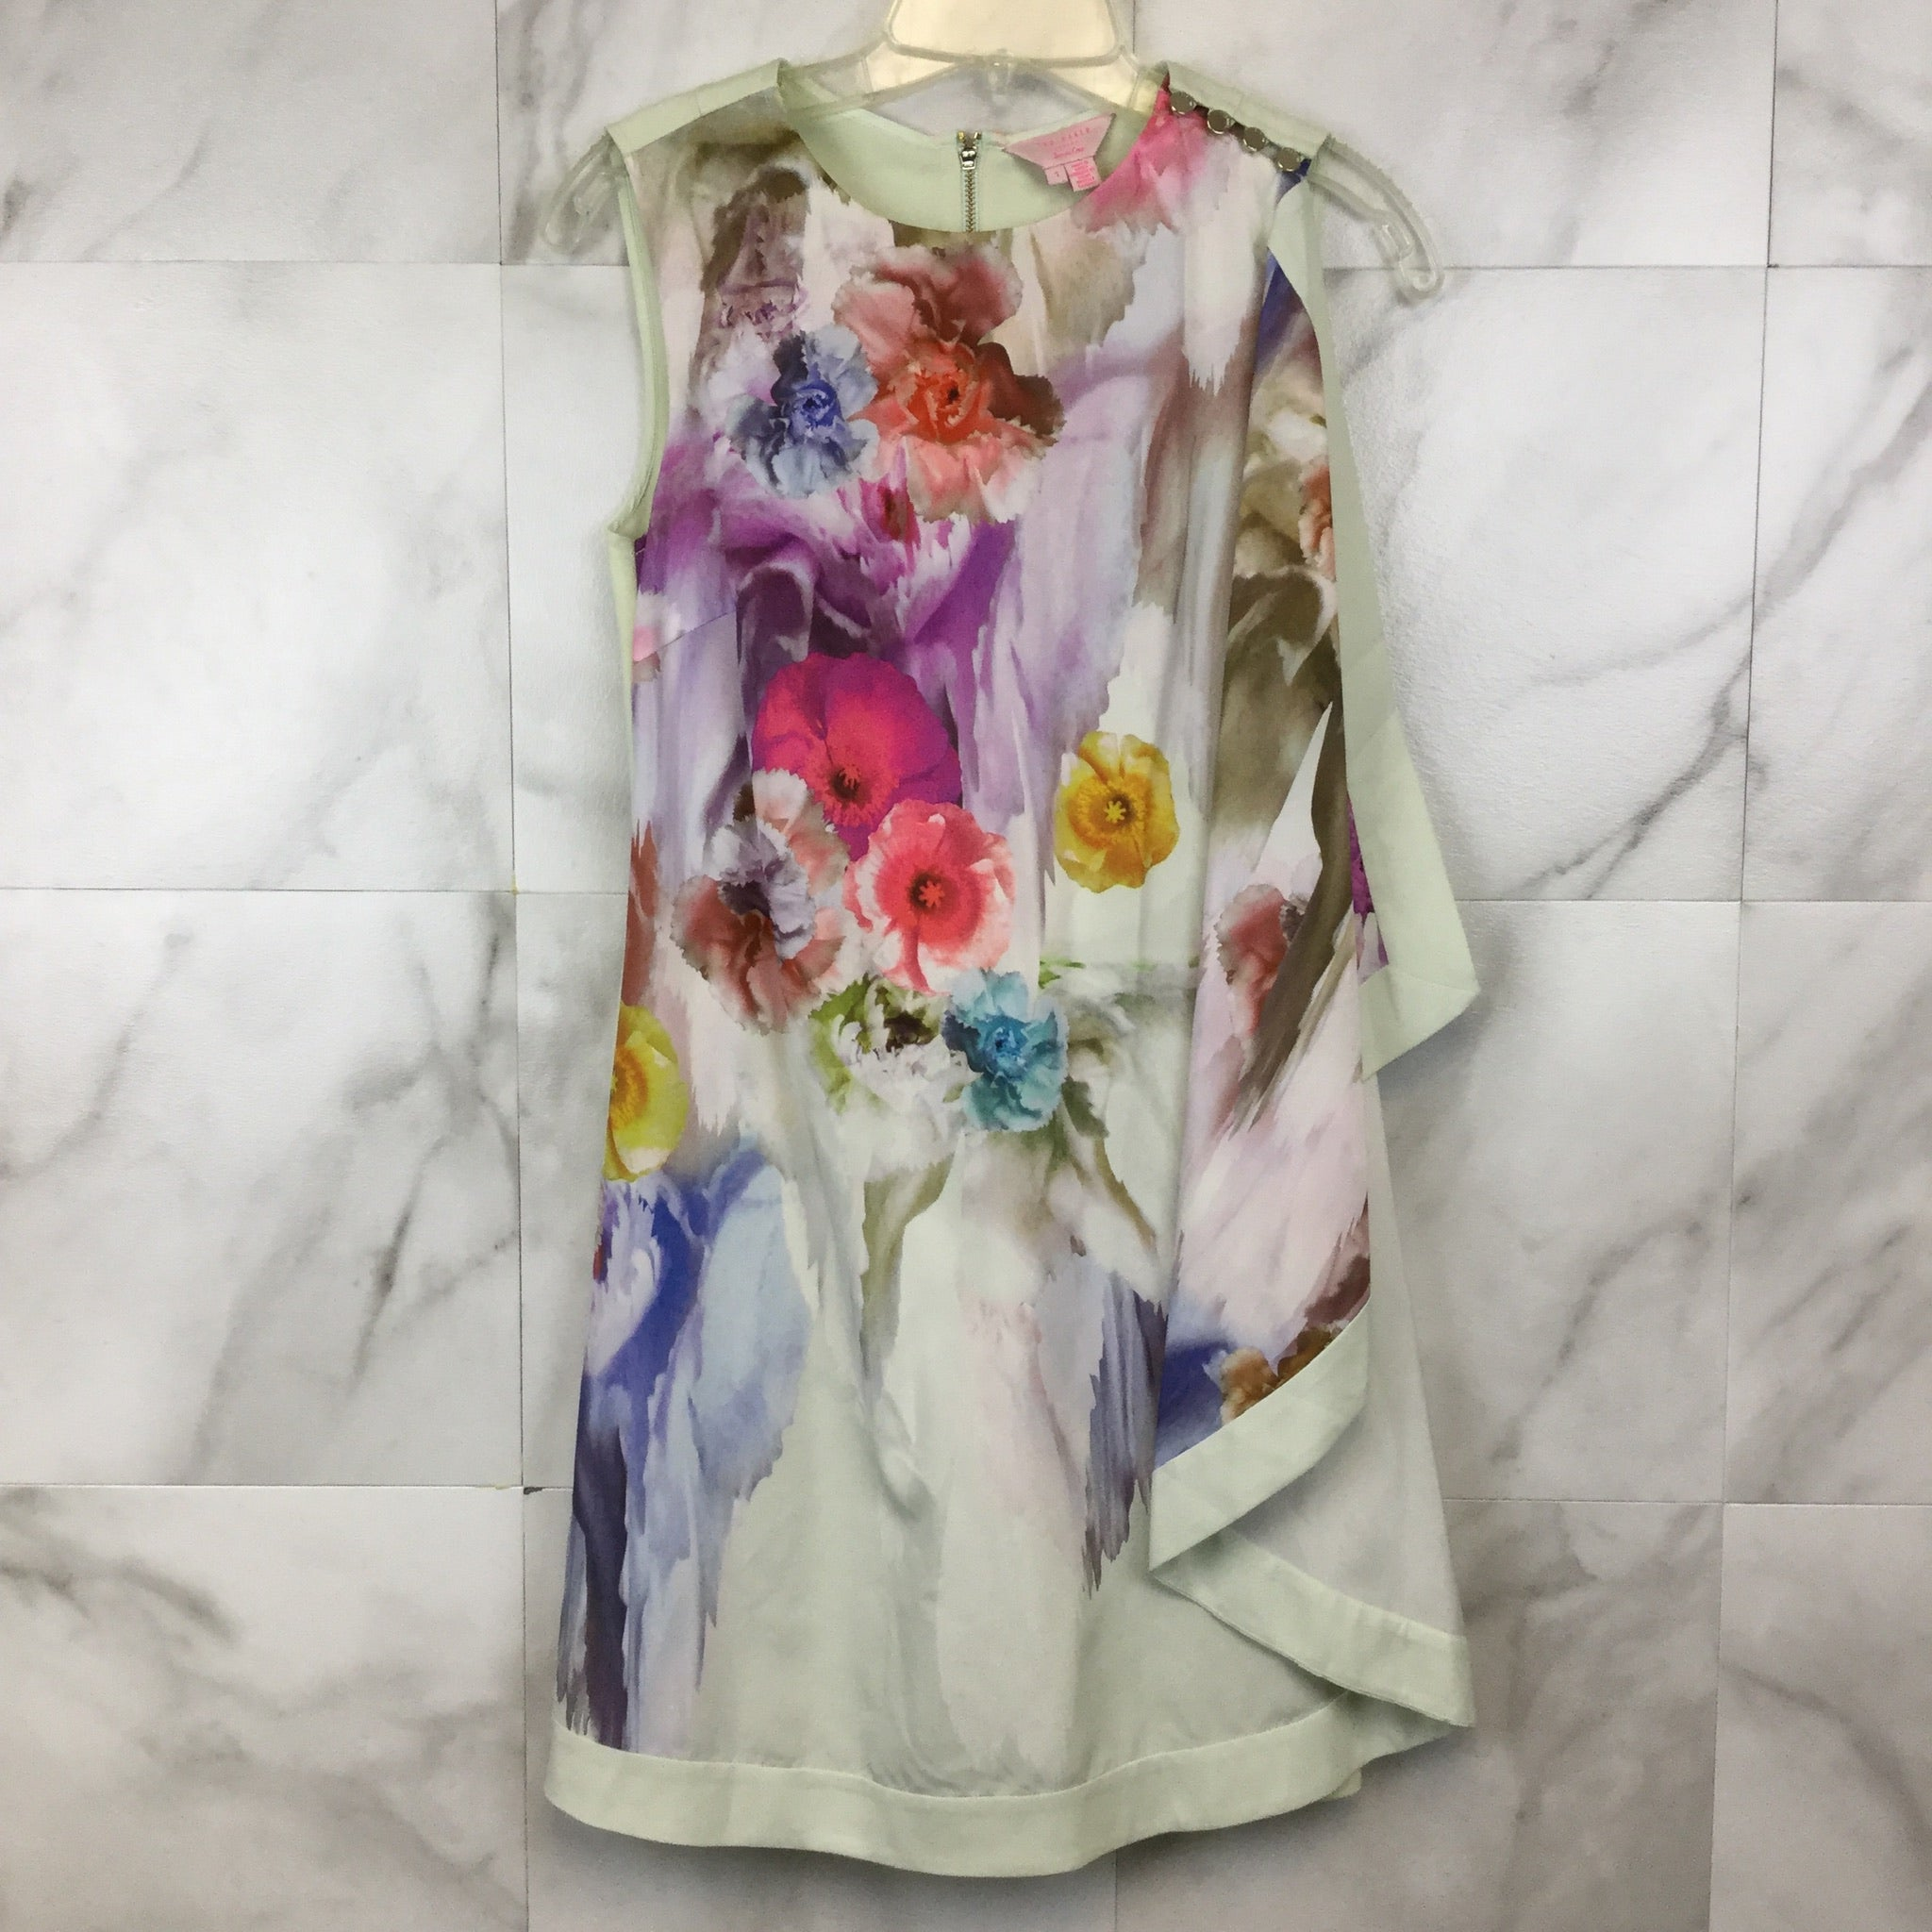 Ted Baker Dahnni Dress - size 4